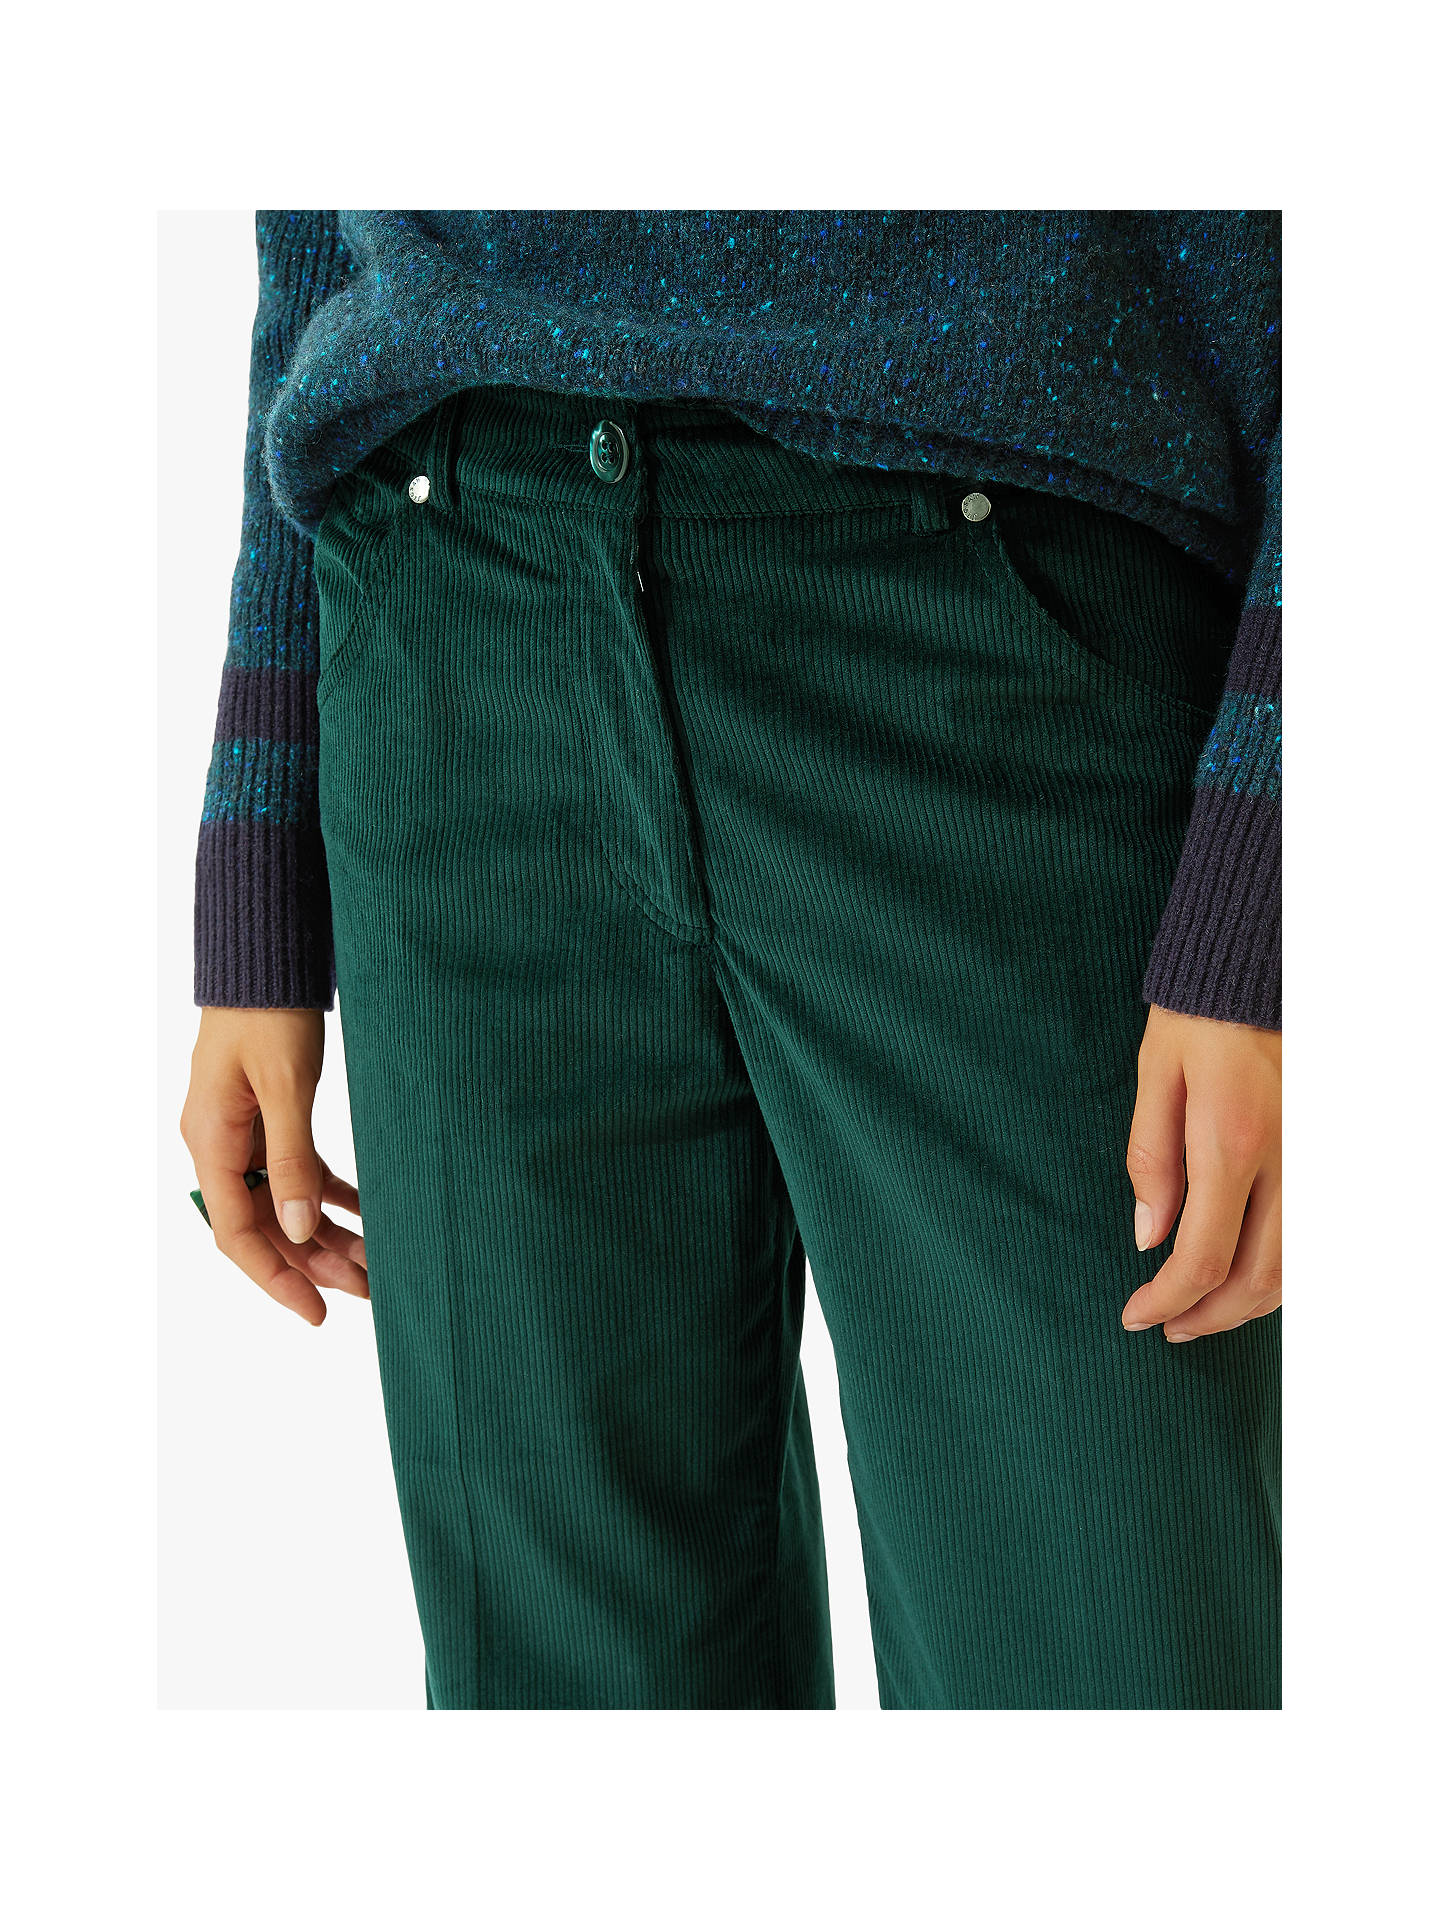 BuyJigsaw Hoxton Cord Trousers, Dark Ivy, 6 Online at johnlewis.com